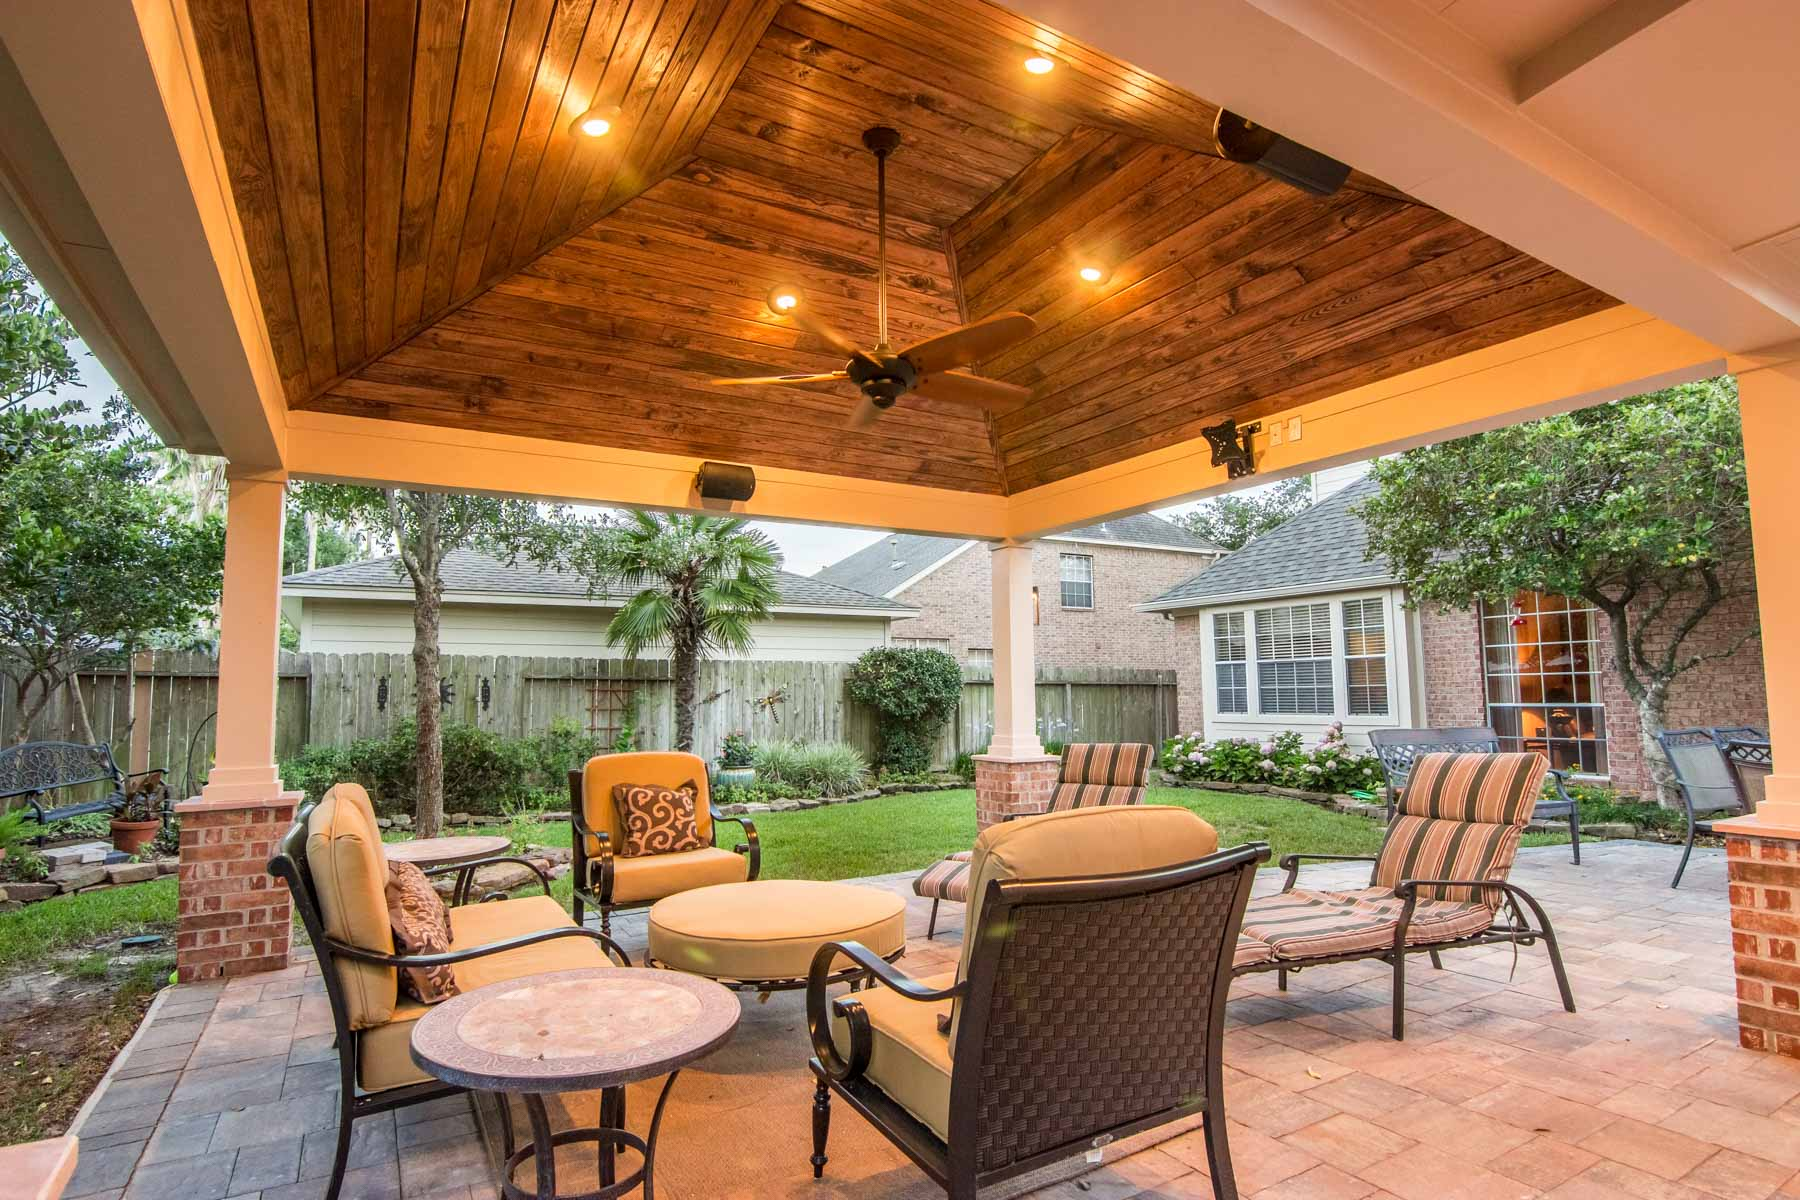 Hip Roof Patio Cover in Copperfield - HHI Patio Covers on Patio Cover Ideas Wood id=58200